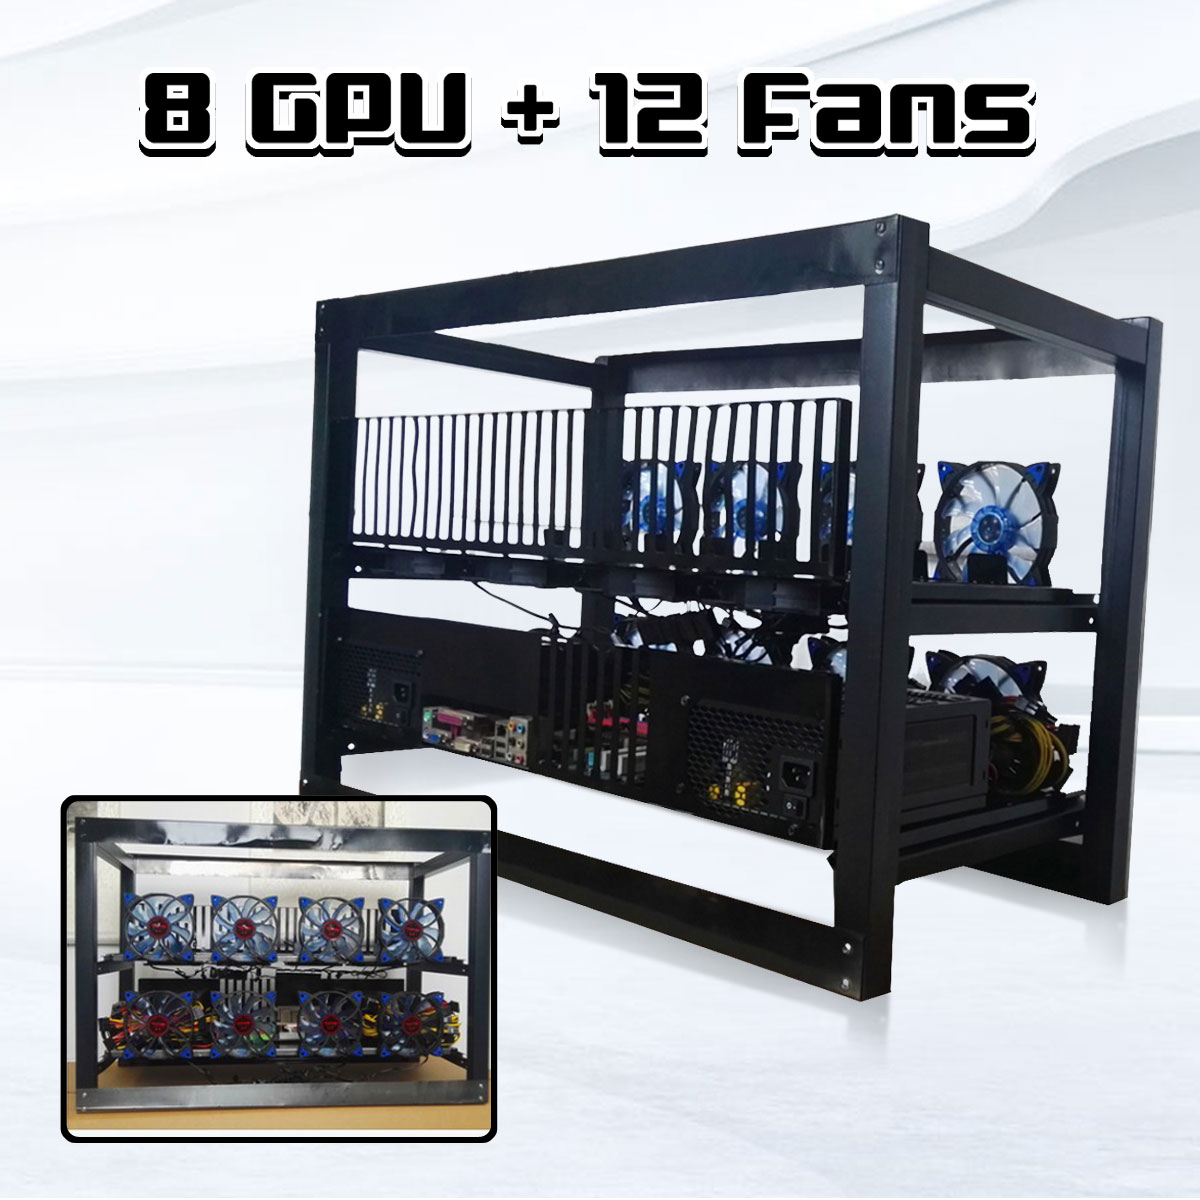 8 GPU Crypto Coin Open Air Aluminum Frame Case Mining Miner Frame Rig Stackable Case With